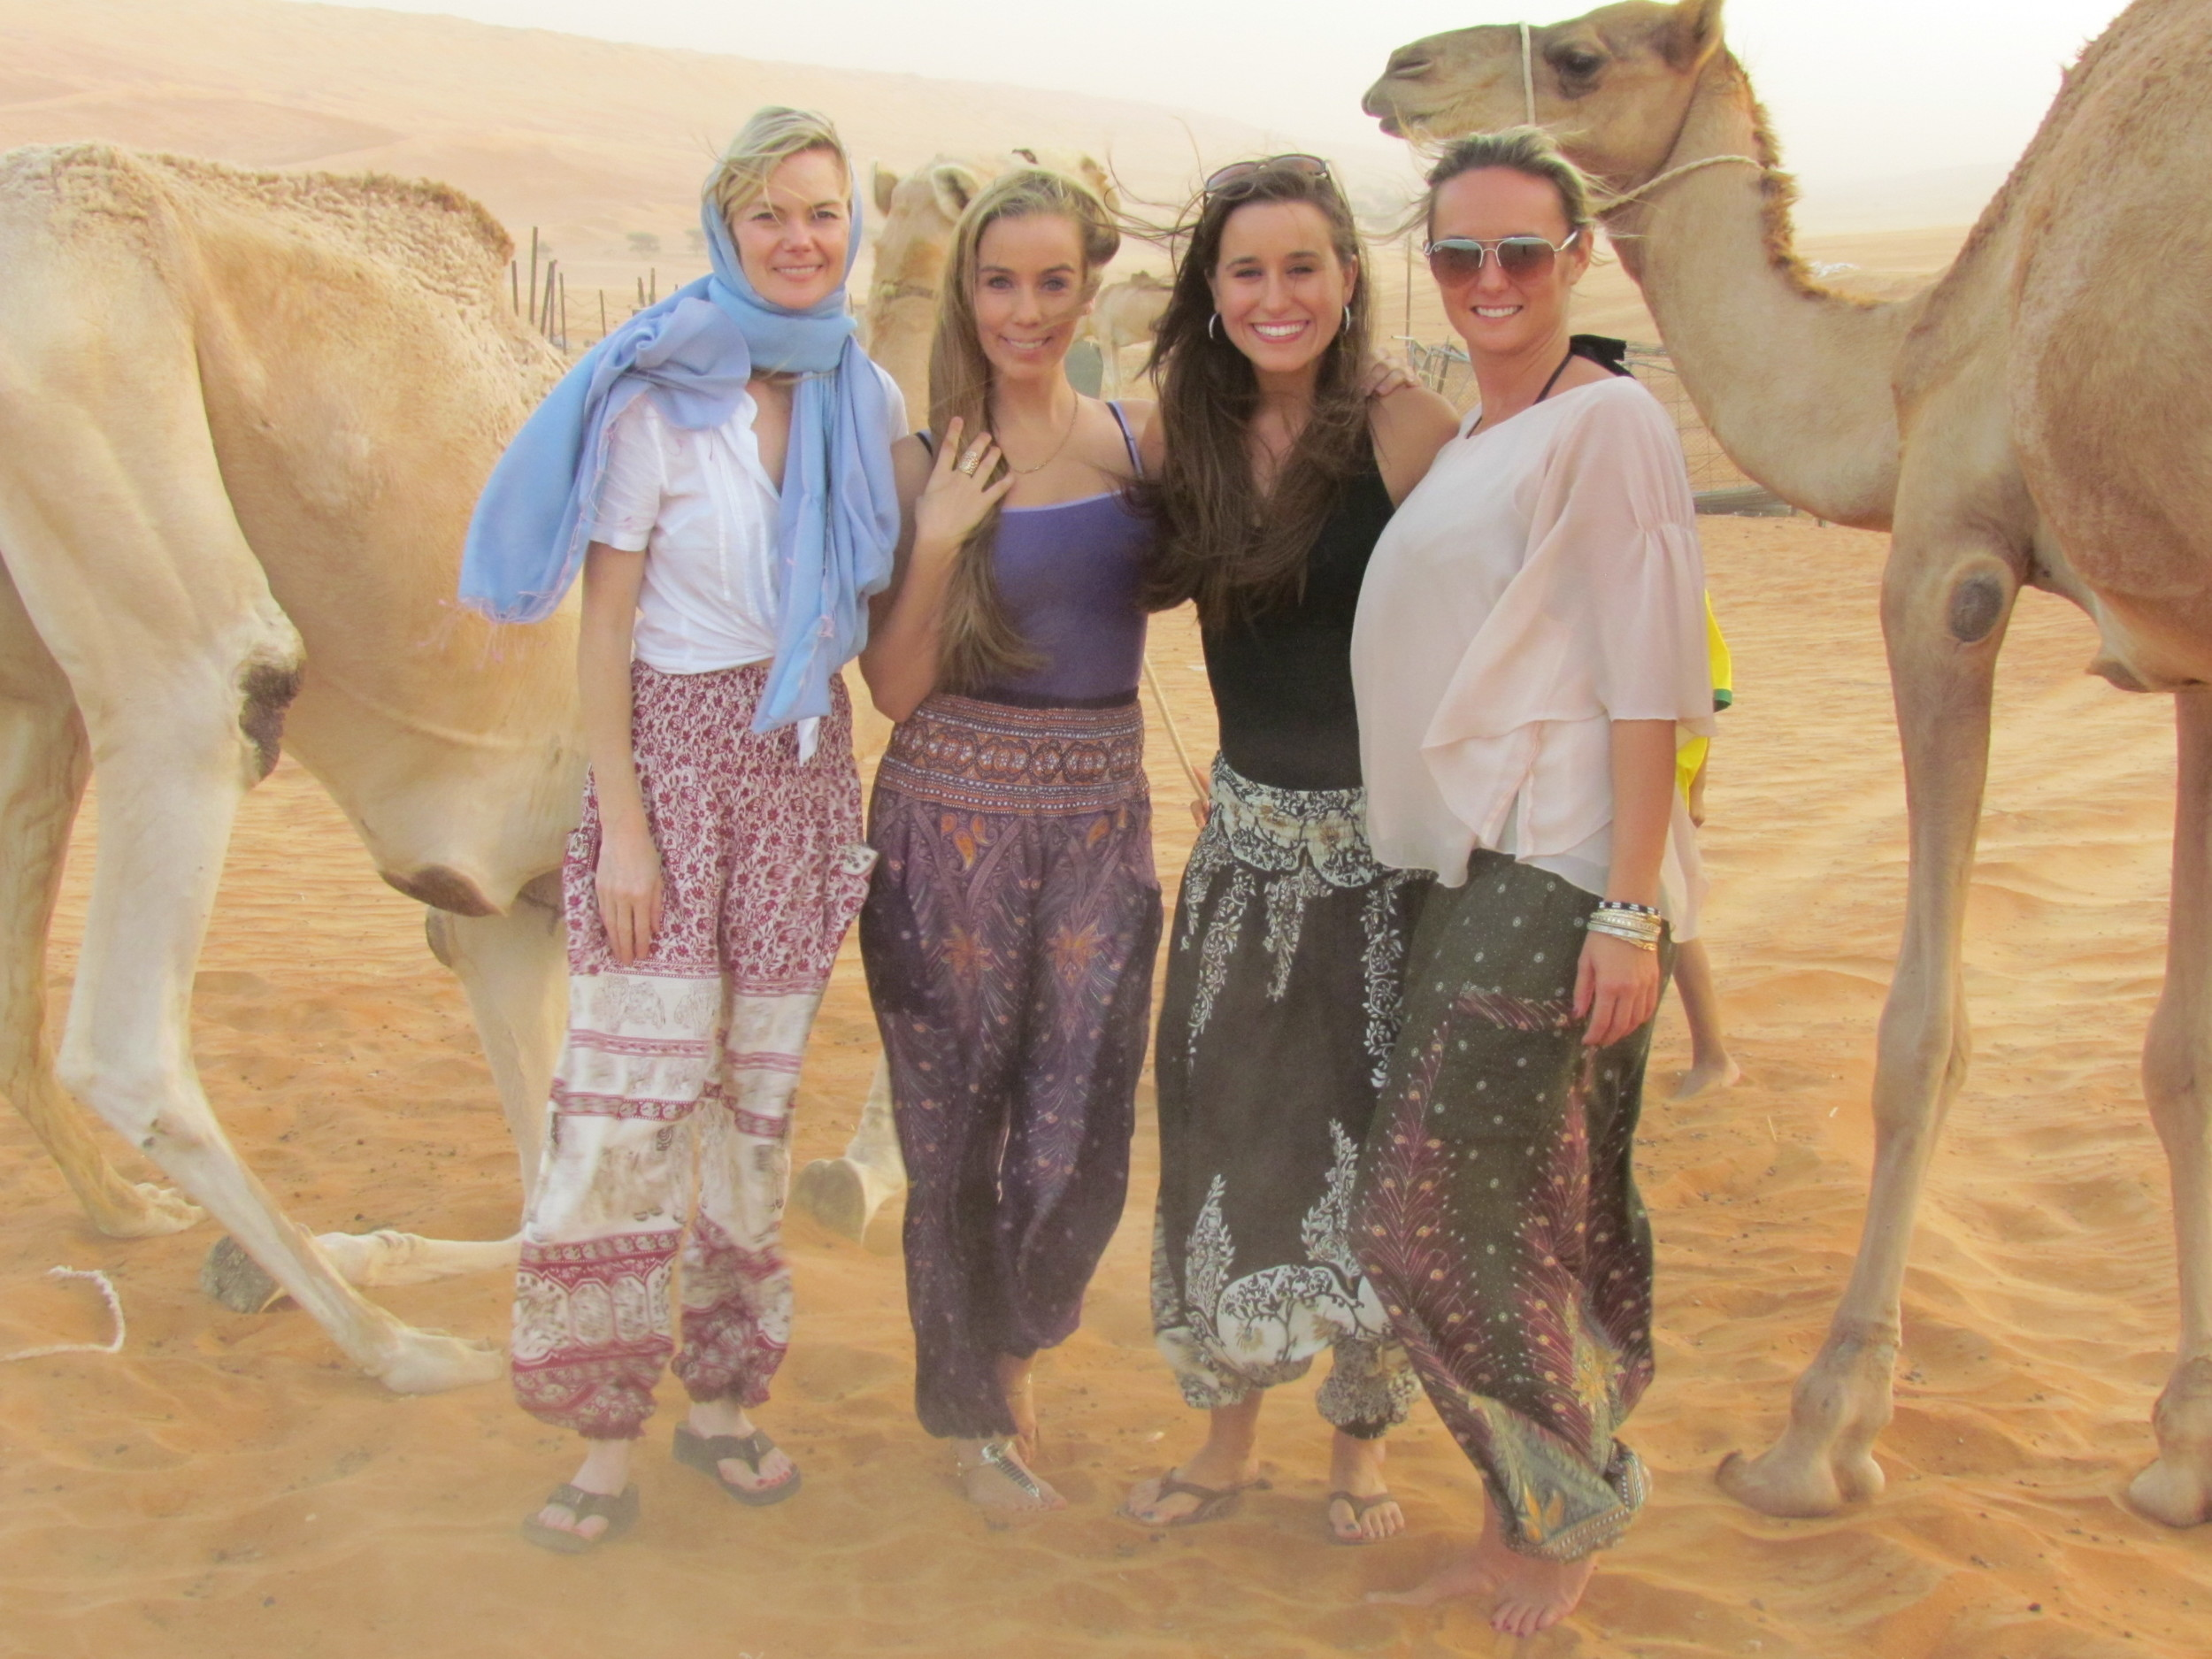 After a full day of exploring in Oman!